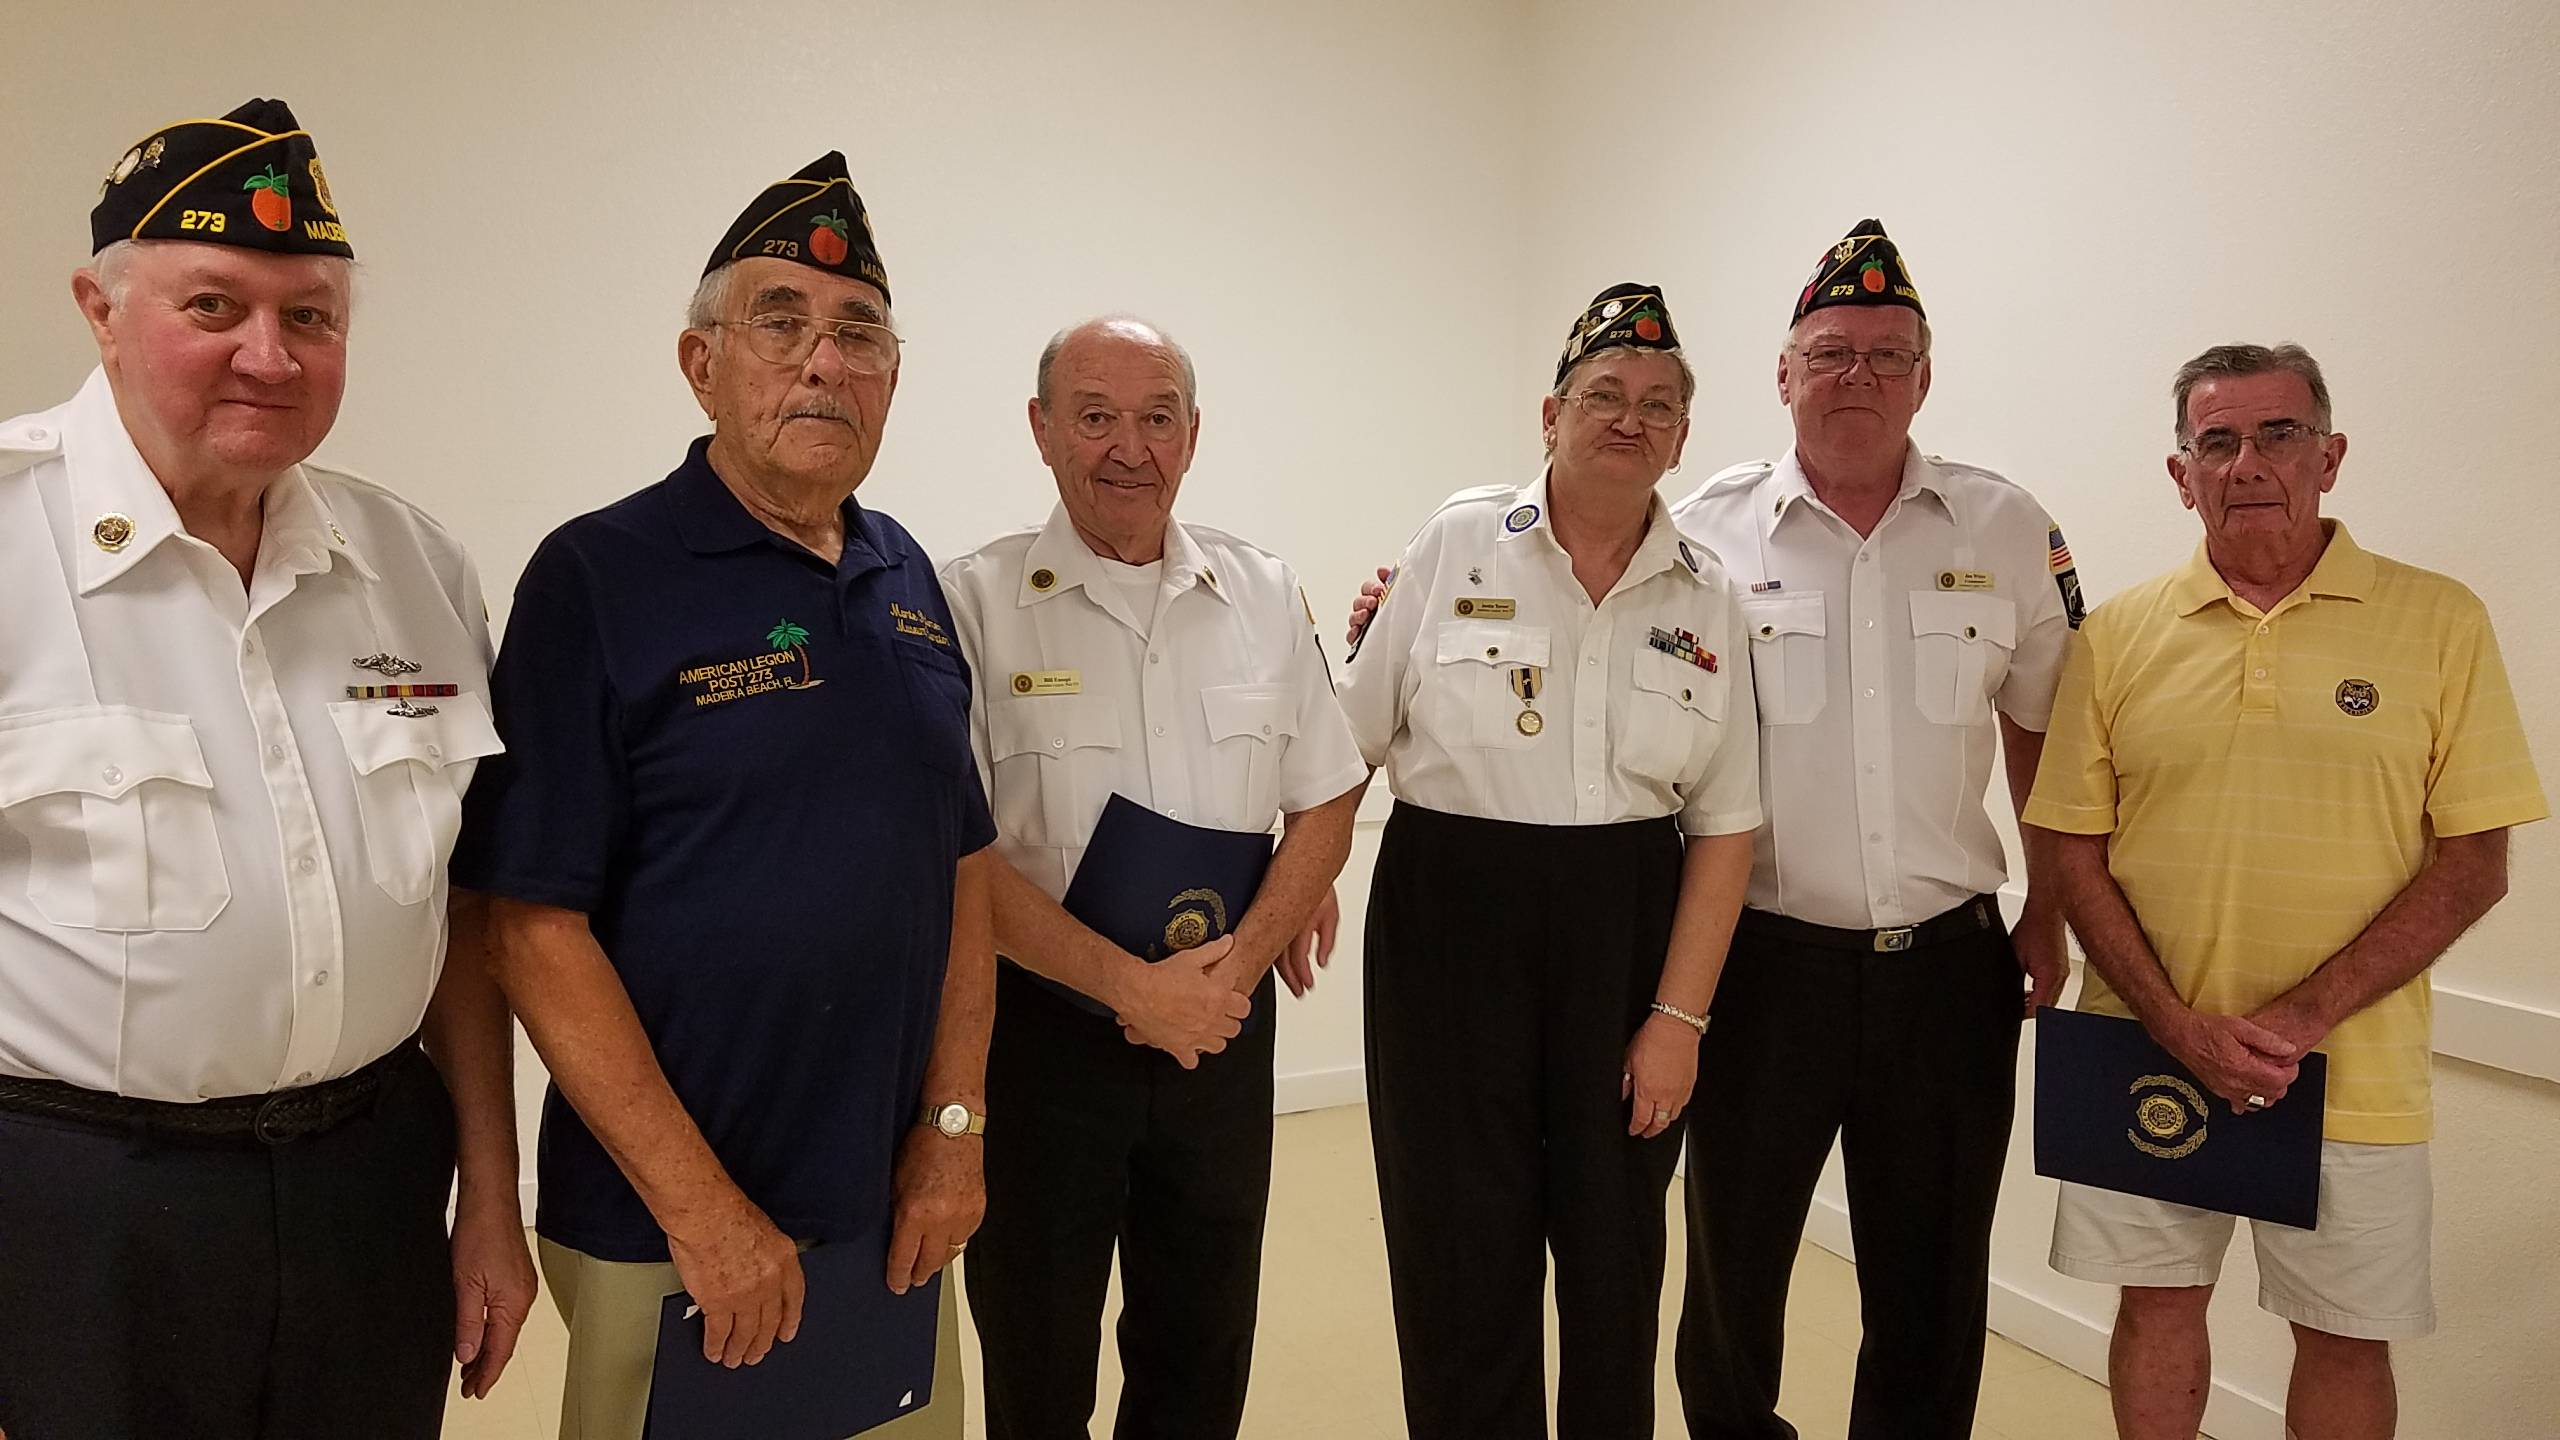 """April 5th: American Legion members named their """"Legionnaires Of The Year"""" for 2014/2015/2016. Congratulations to Executive Officers Jack McCarrie, Bill Eusepi and Monte Palmer!"""